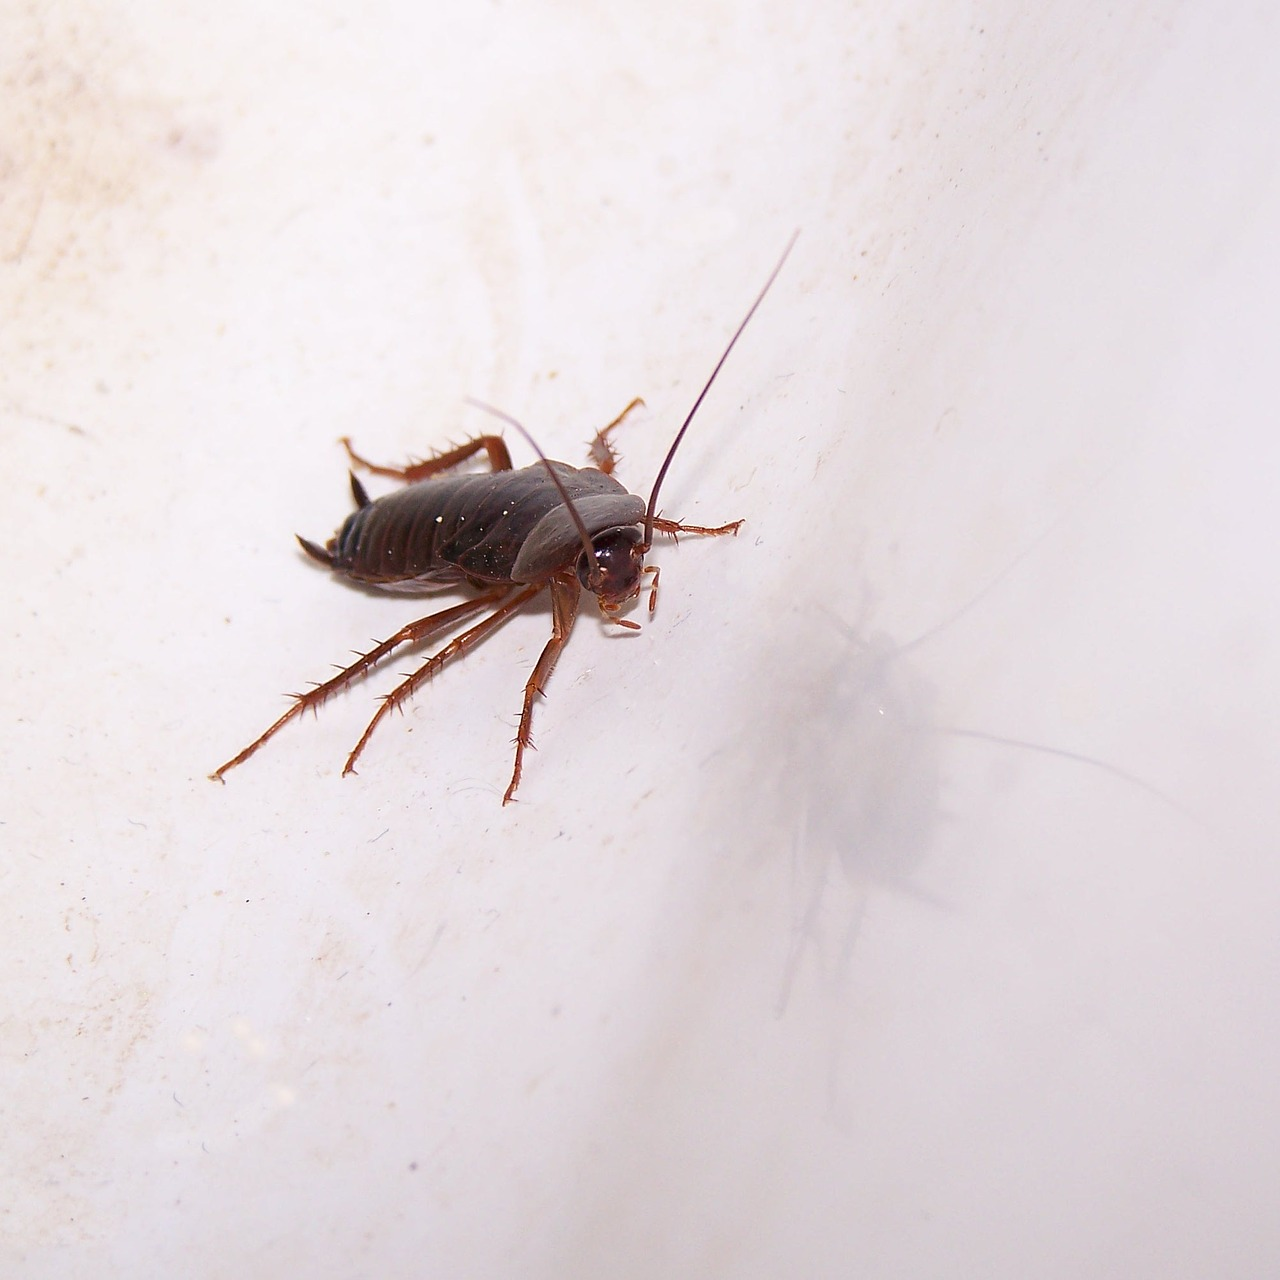 vero beach pest control, sebastian pest control, bug assassin, bug assassin pest management, sebastian exterminator, vero beach exterminator, how to get rid of roaches, roach facts